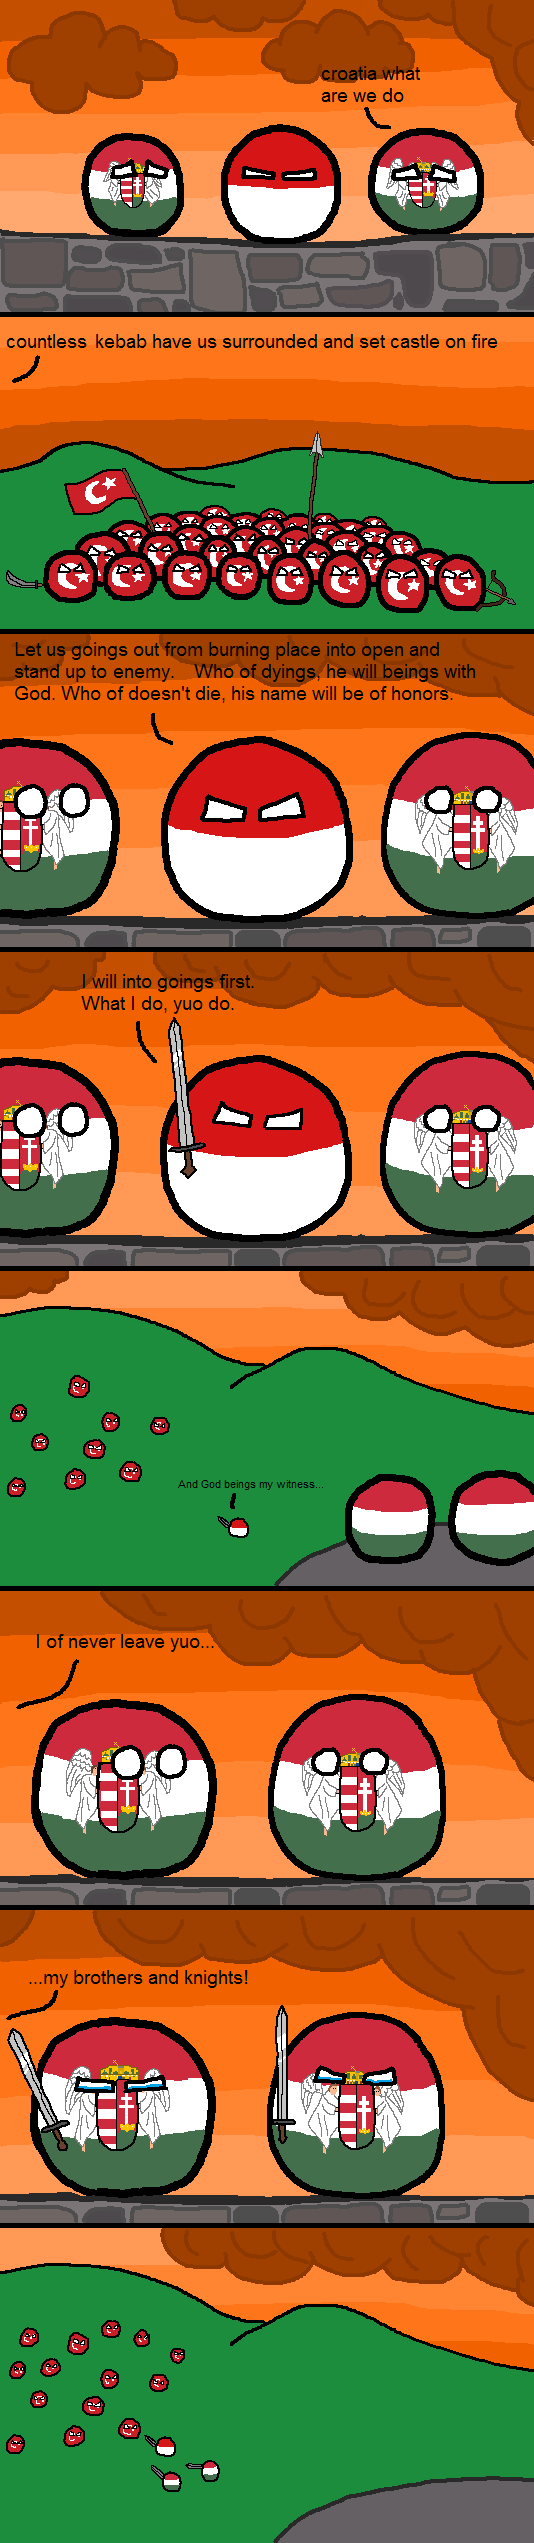 The Battle of Szigetvar